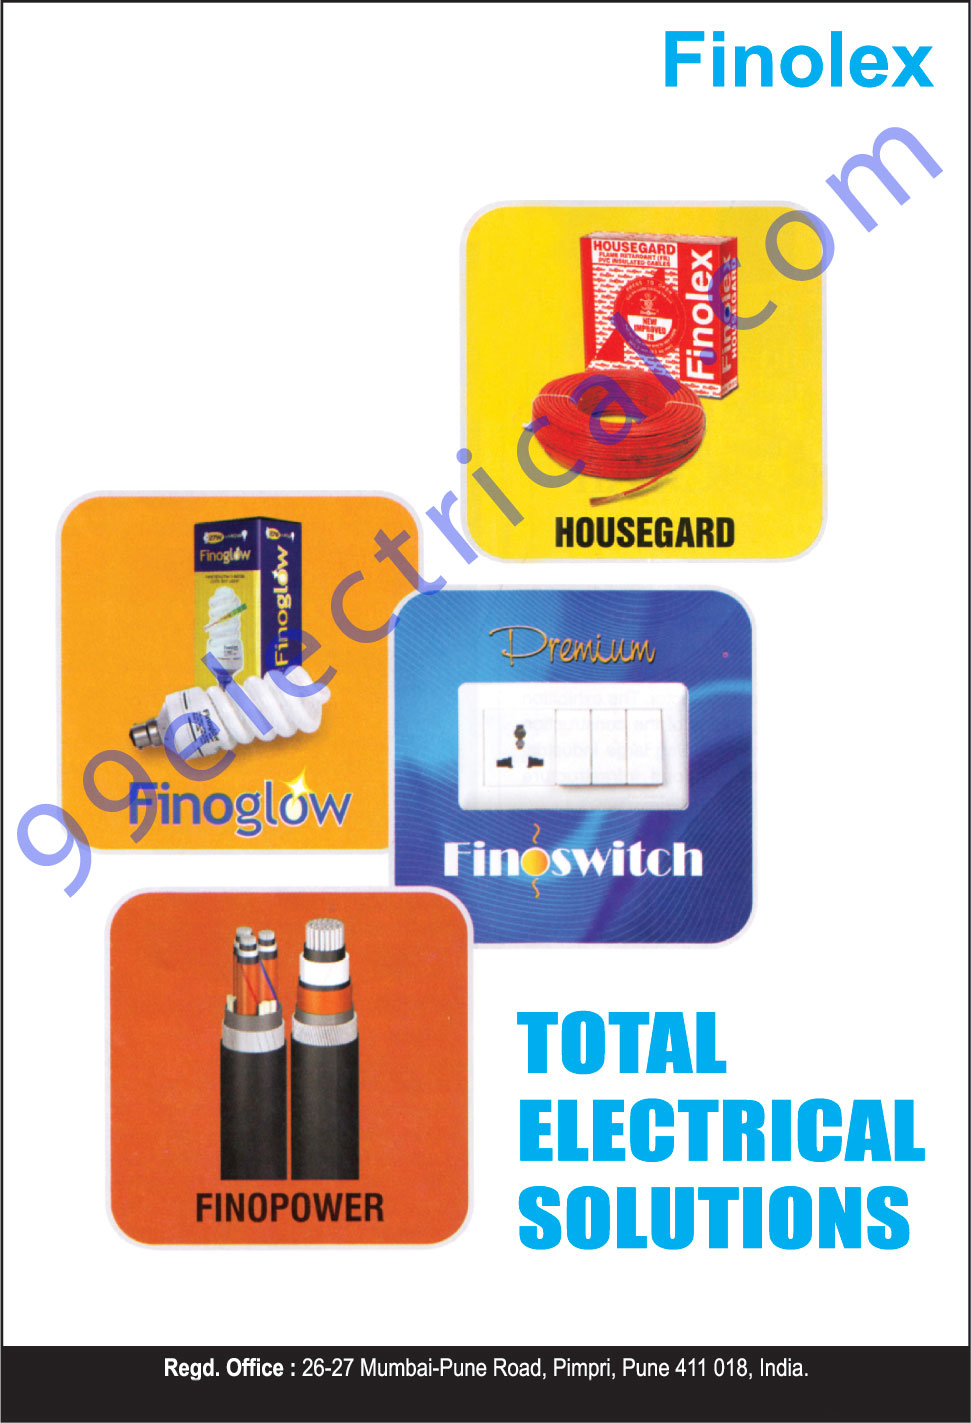 LED Bulbs, LED Lights, Luminaries, Led Tubes, Down Lights, Street Lights, High Bay Fixture, Led Square Panels, Led Round Panels, Total Electrical Solutions, Wires, Switches, Cables, Electrical Products, PVC Sheets, PVC Pipes, PVC Fittings, Optic Fibre, CFL, Copper Rods, Power Cables, CFL Bulb, Electrical Solutions